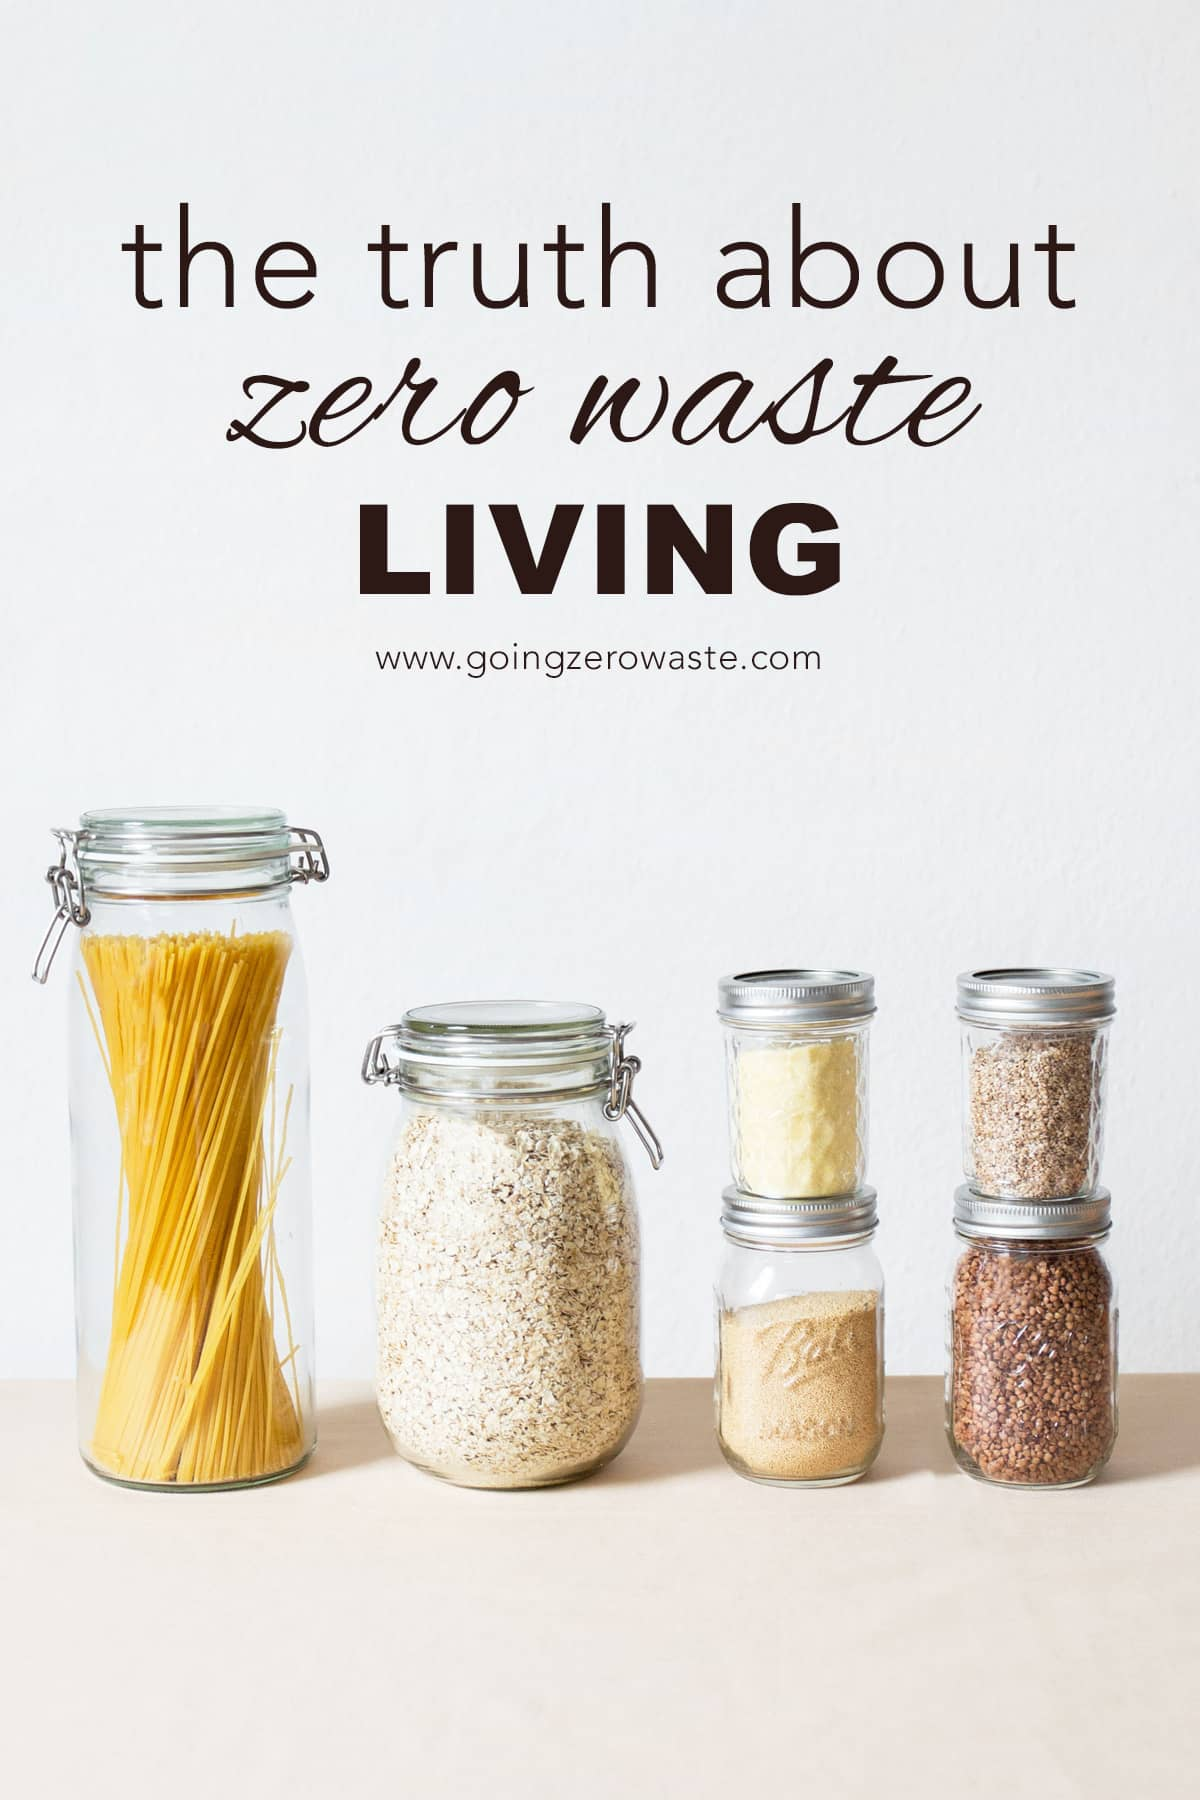 The truth about zero waste living from www.goingzerowaste.com #zerowaste #ecofriendly #thethingstheydonttellyou #gogreen